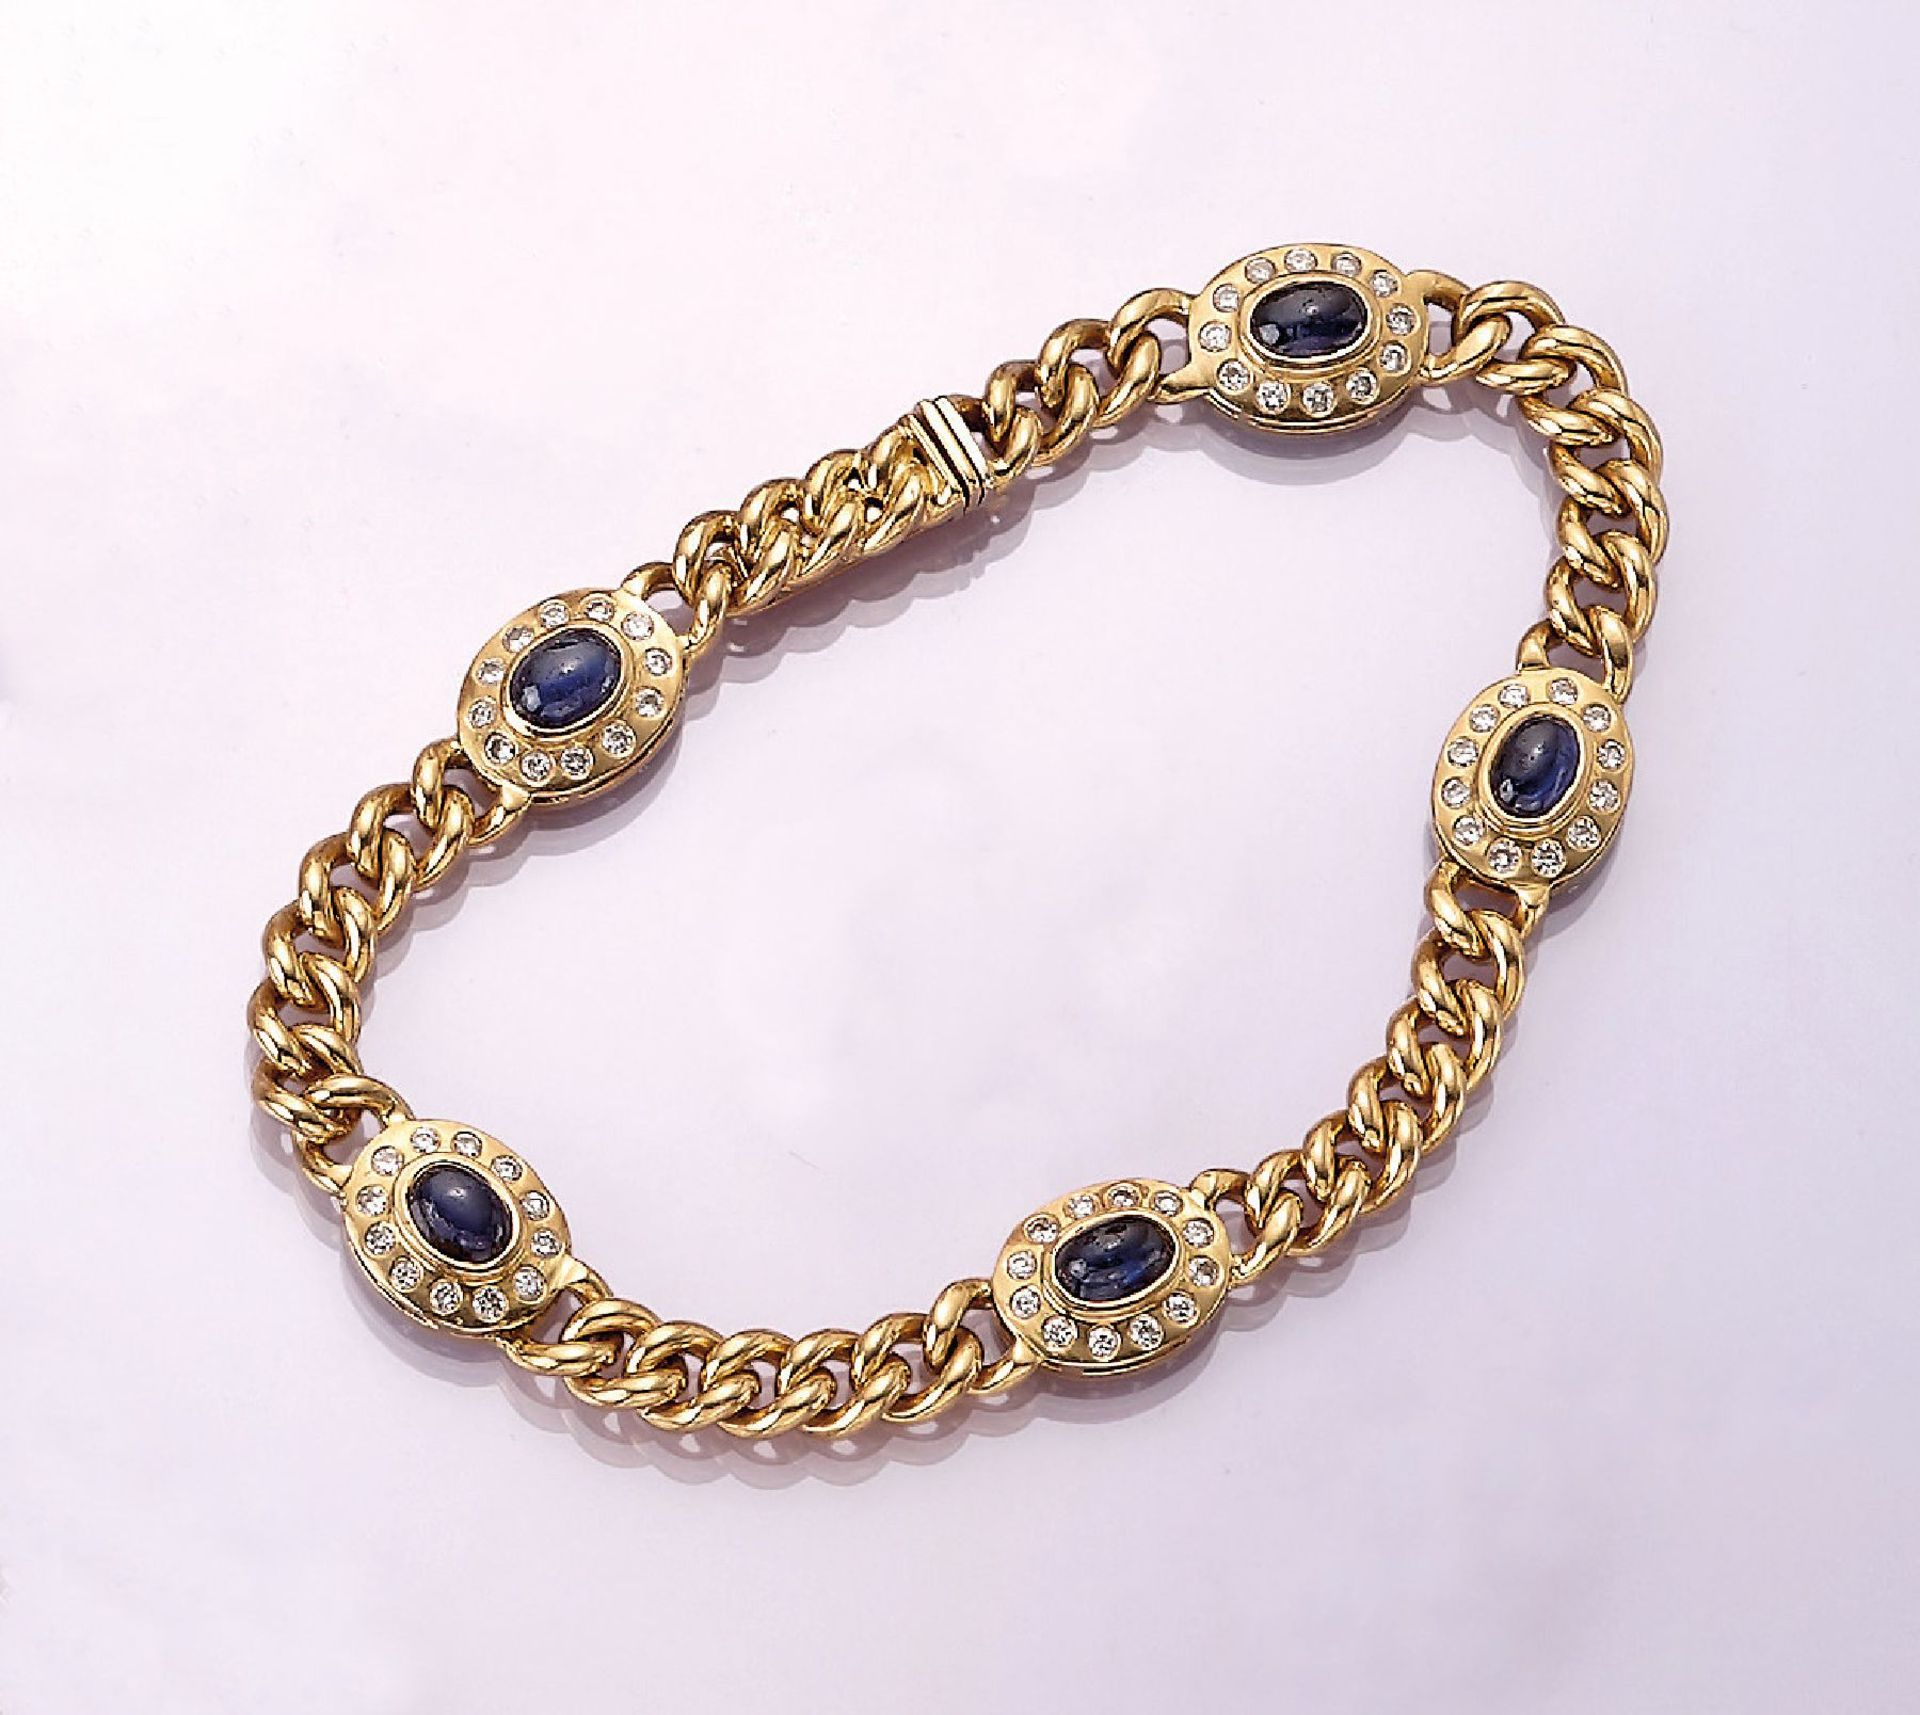 Los 31527 - 18 kt gold bracelet with sapphires and brilliants , YG 750/000, 5 oval sapphire- cabochons total